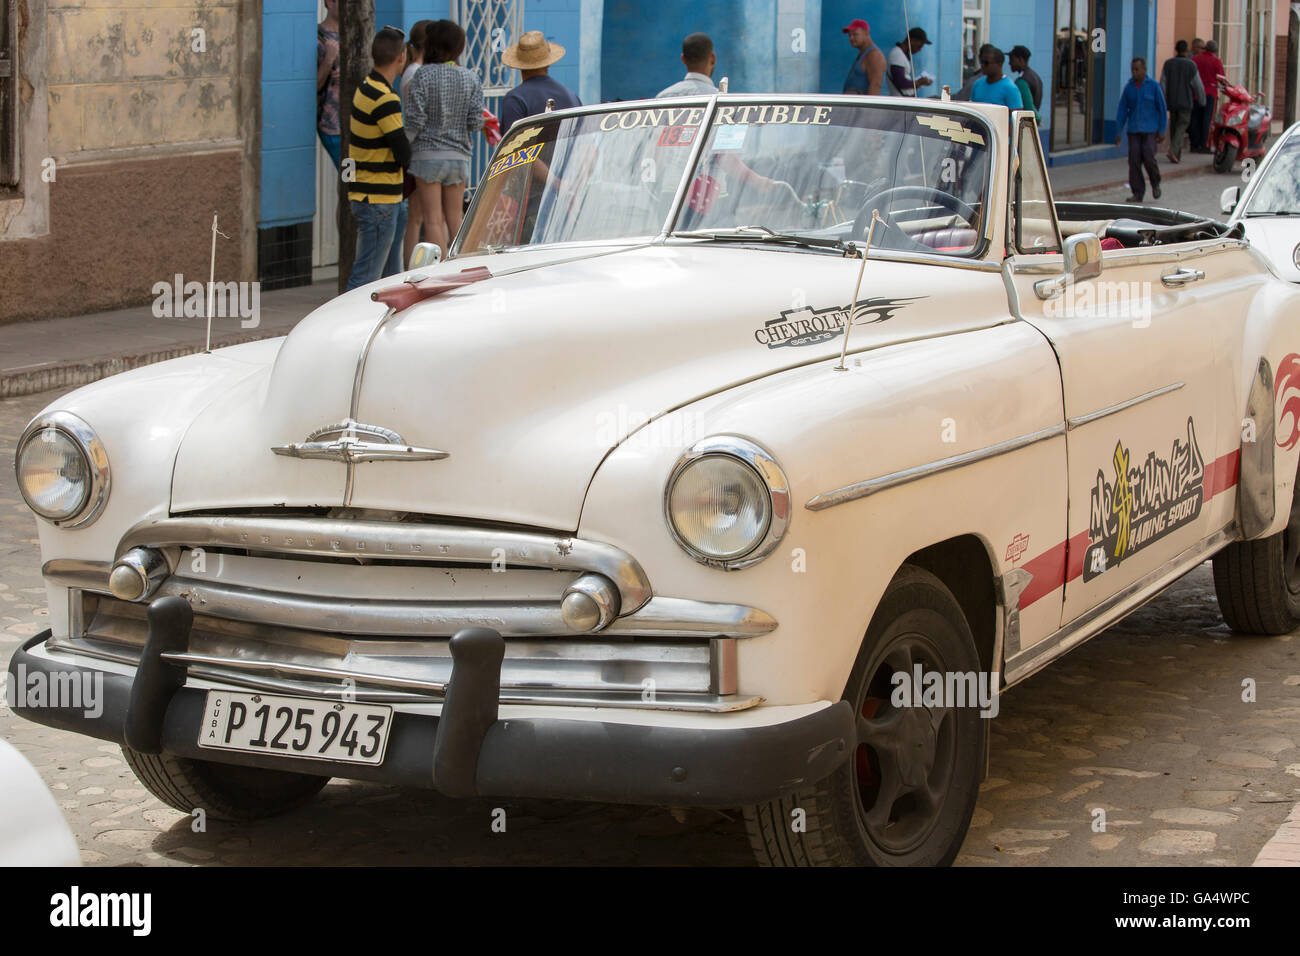 Vintage convertible Chevy taxi parked on a Trinidad street in Cuba, with people in the background - Stock Image